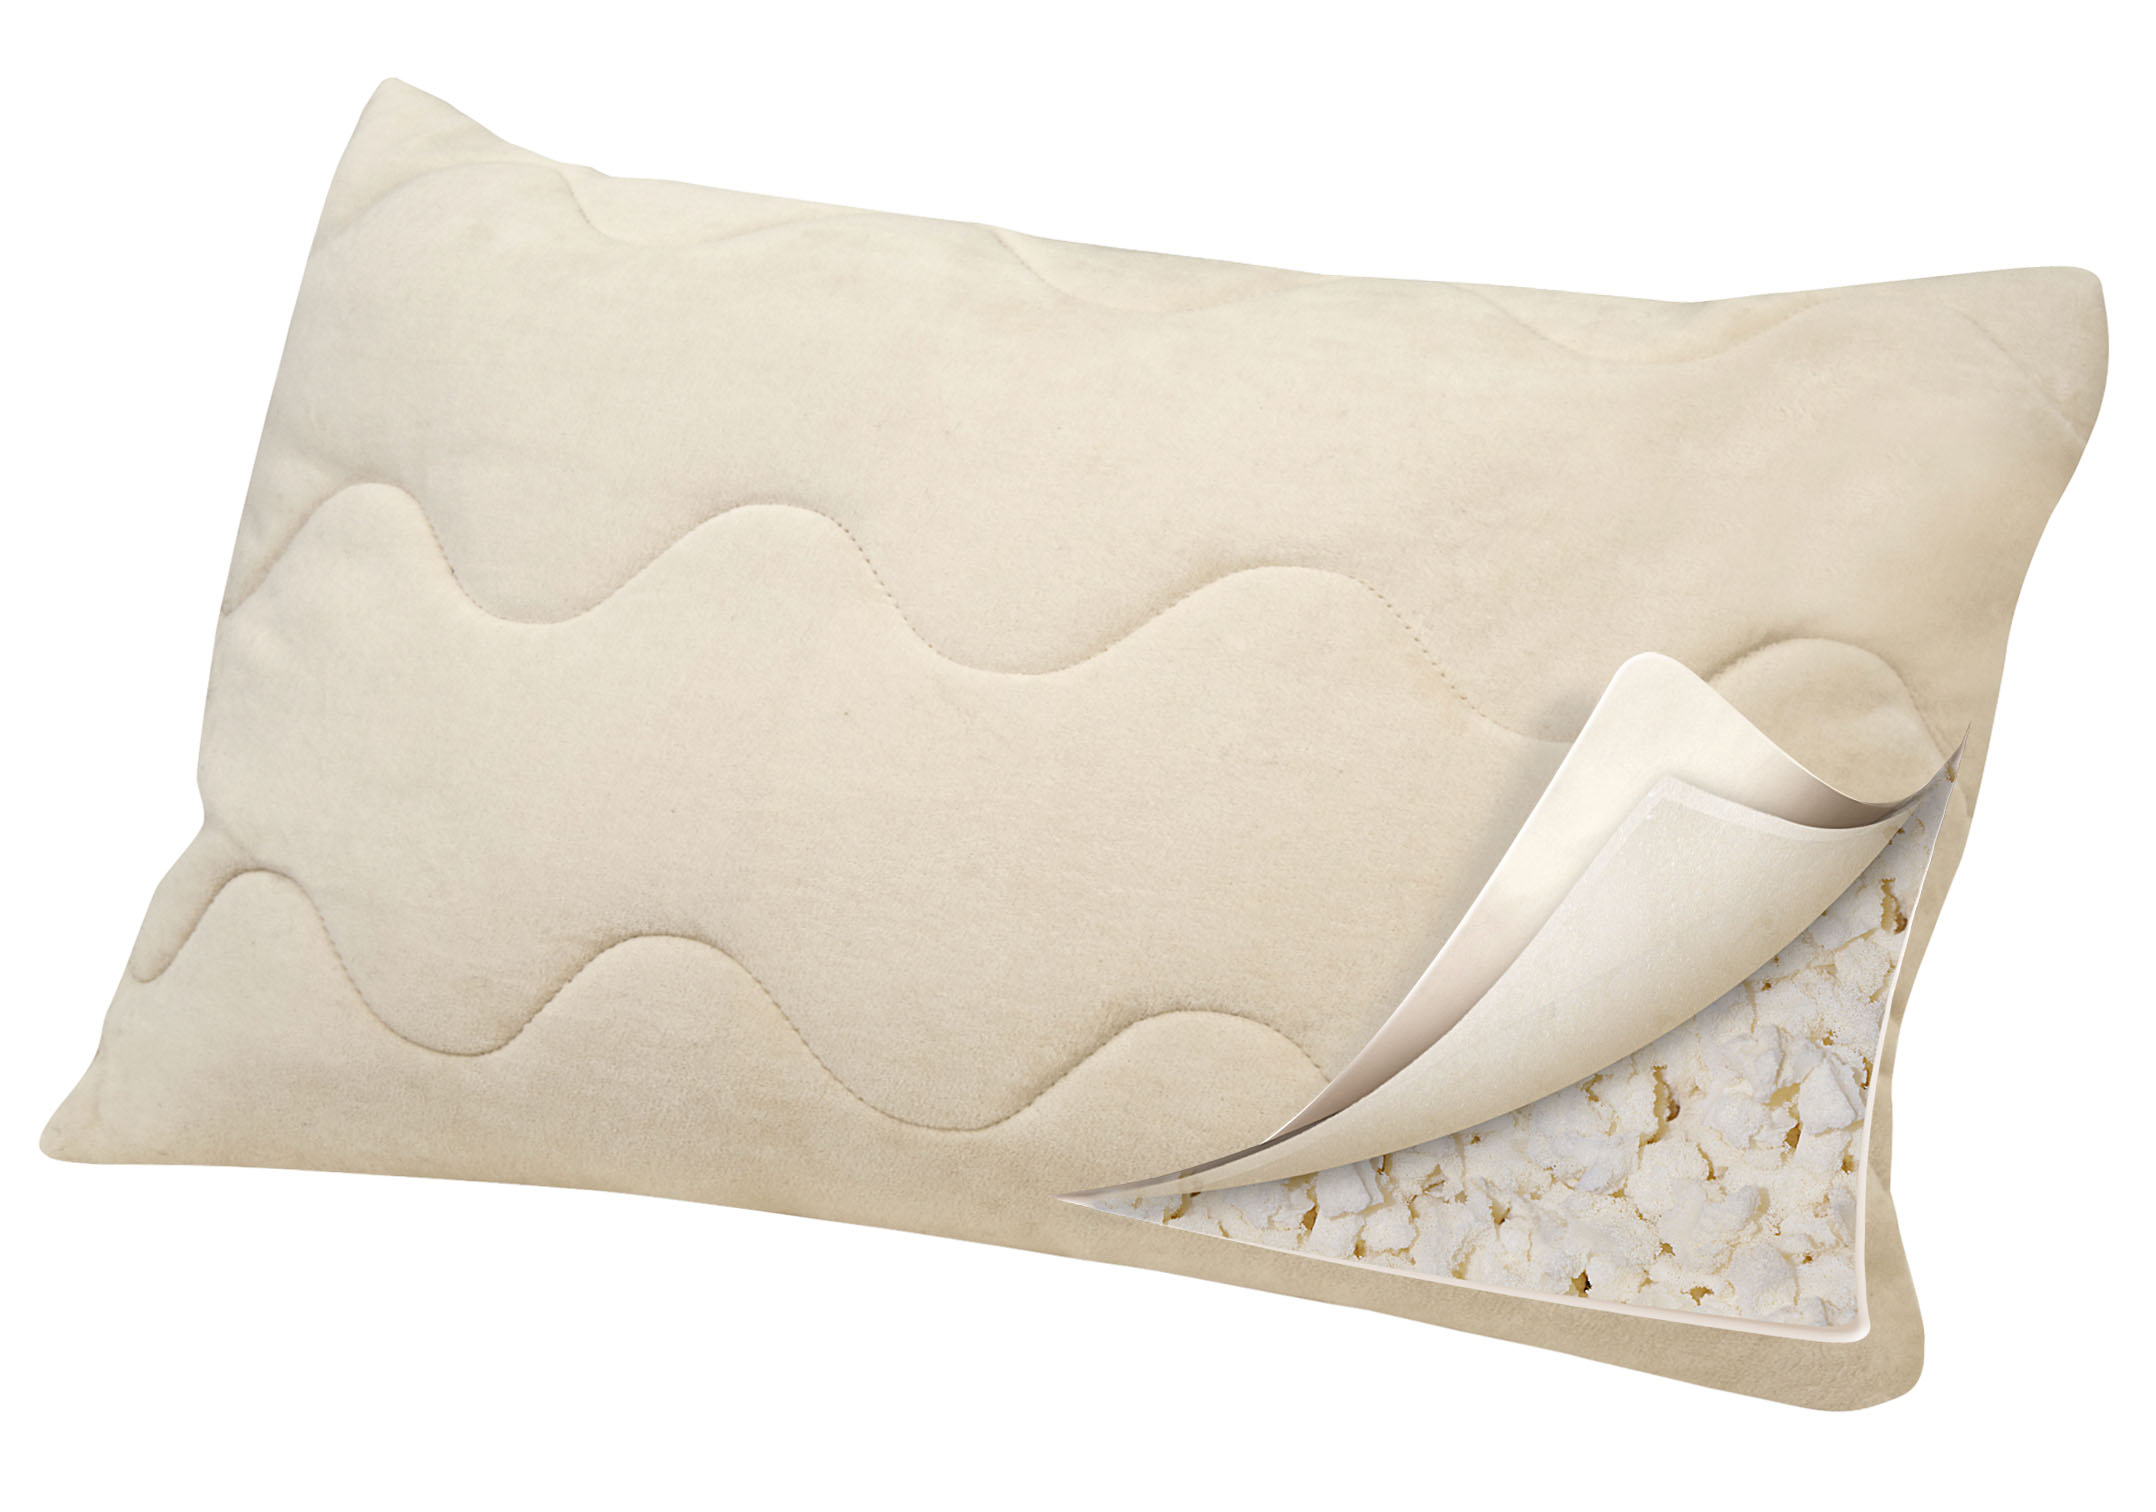 Organic Latex Pillow 22